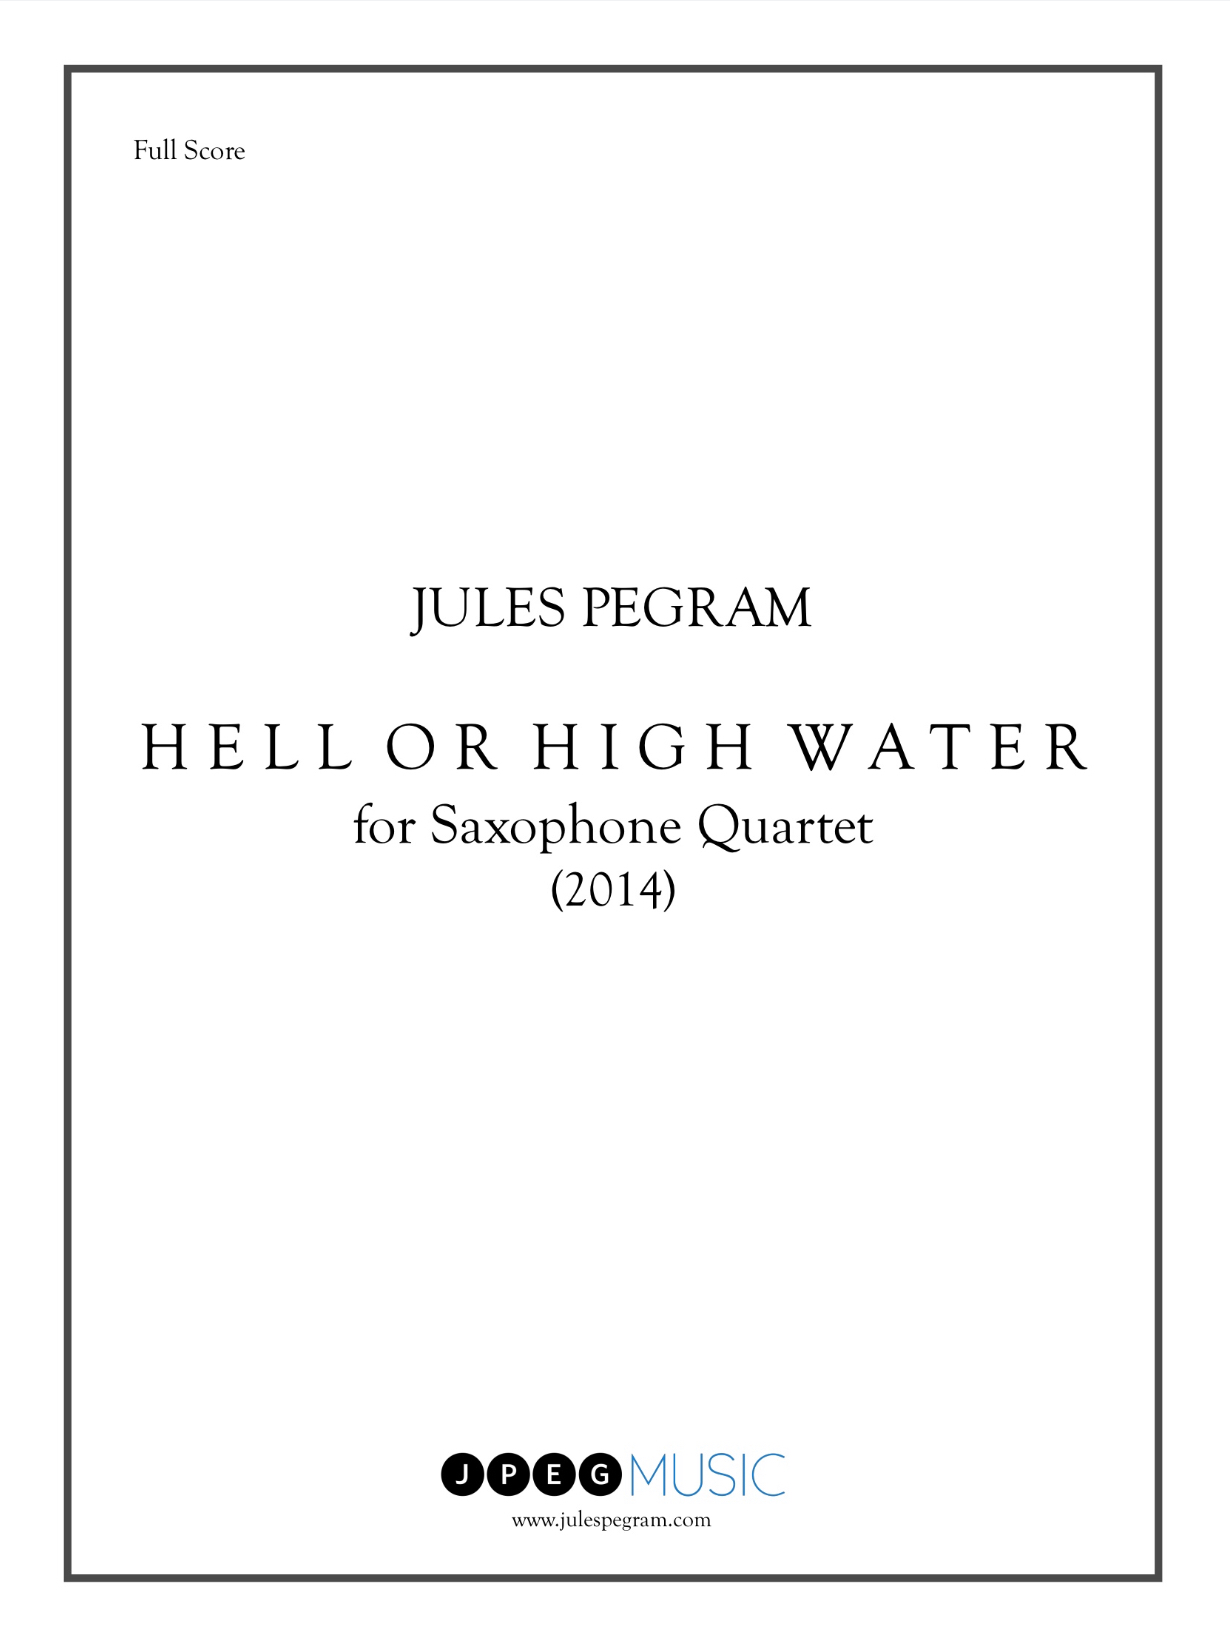 Hell Or High Water by Jules Pegram